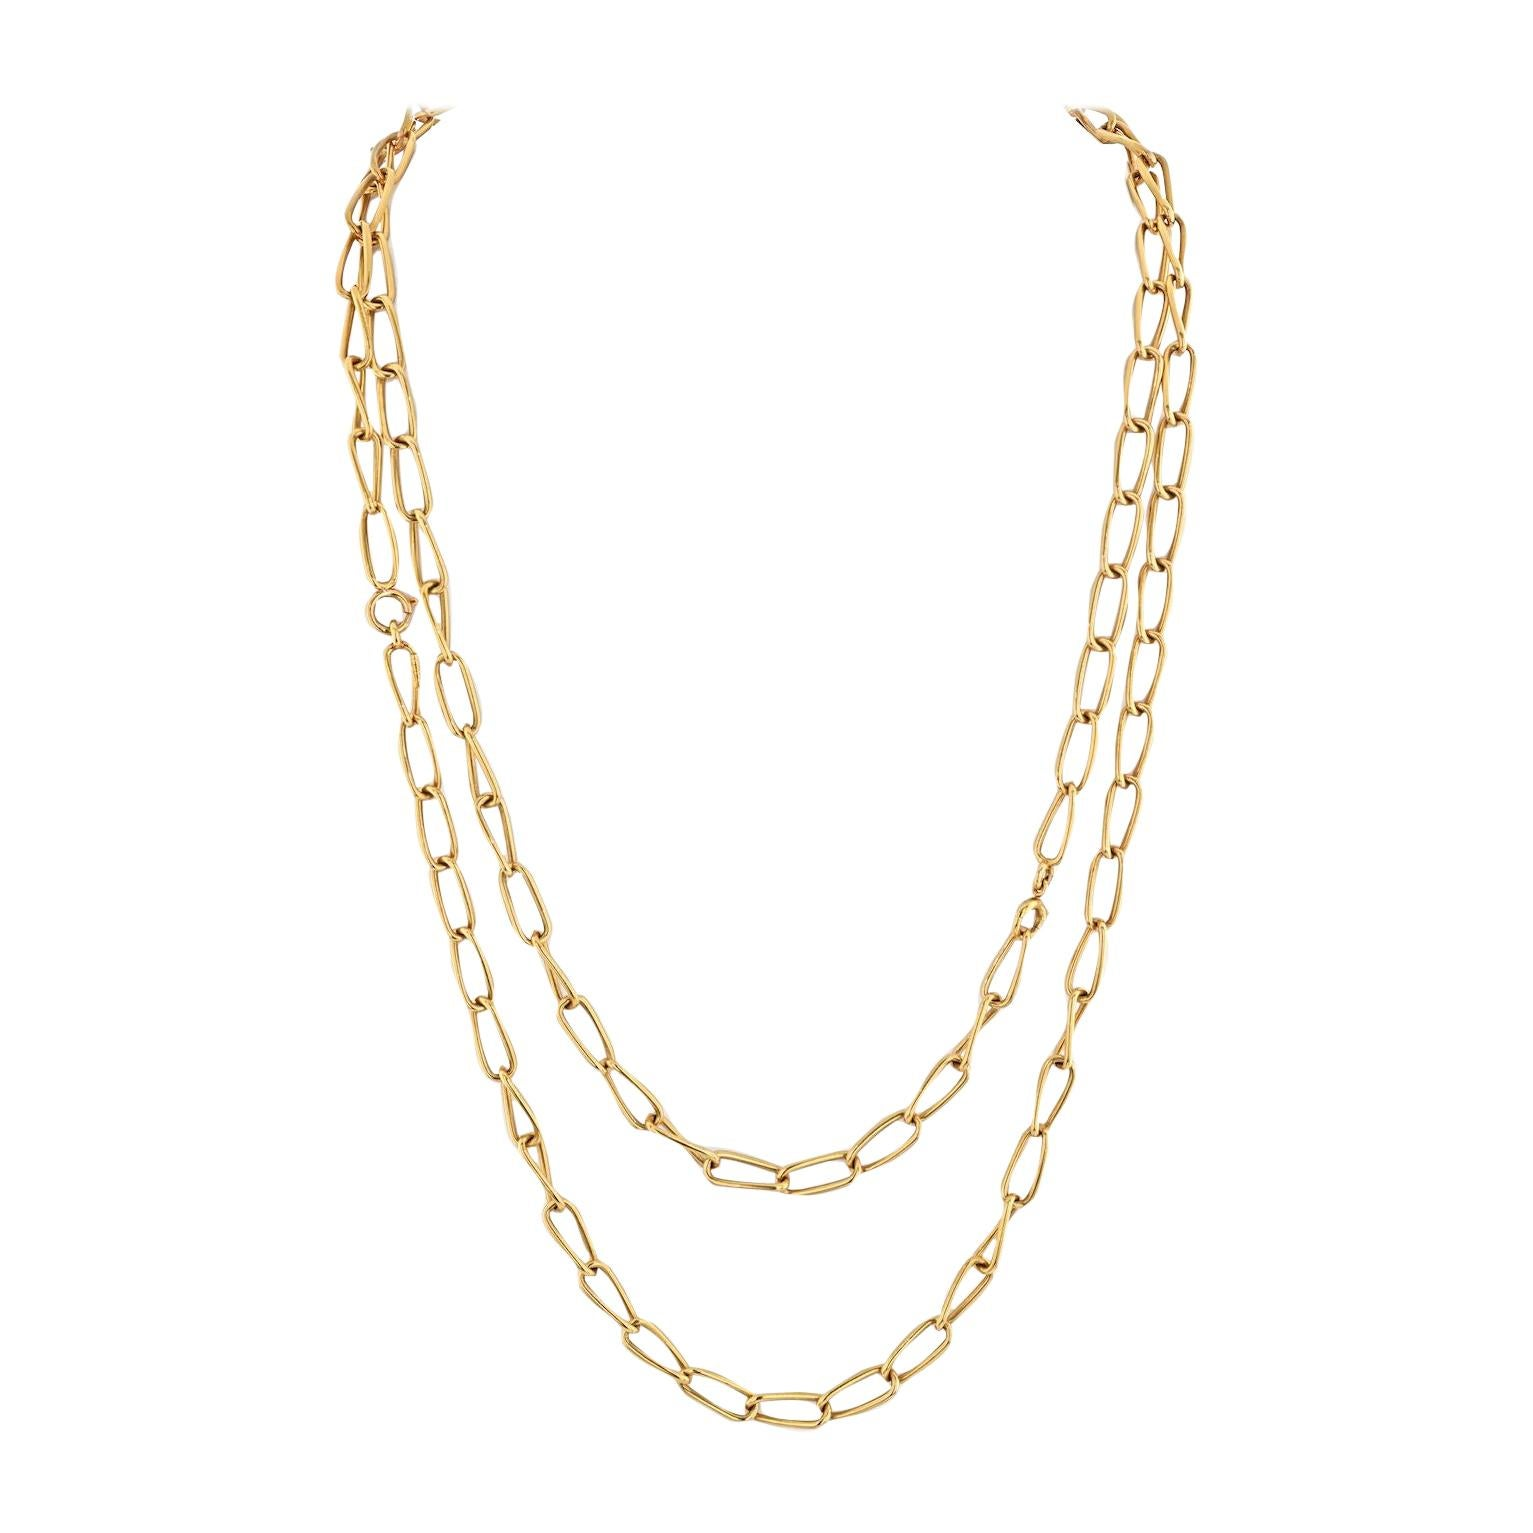 Bvlgari 18k Yellow Gold Vintage 1970's Long Link Chain Necklace